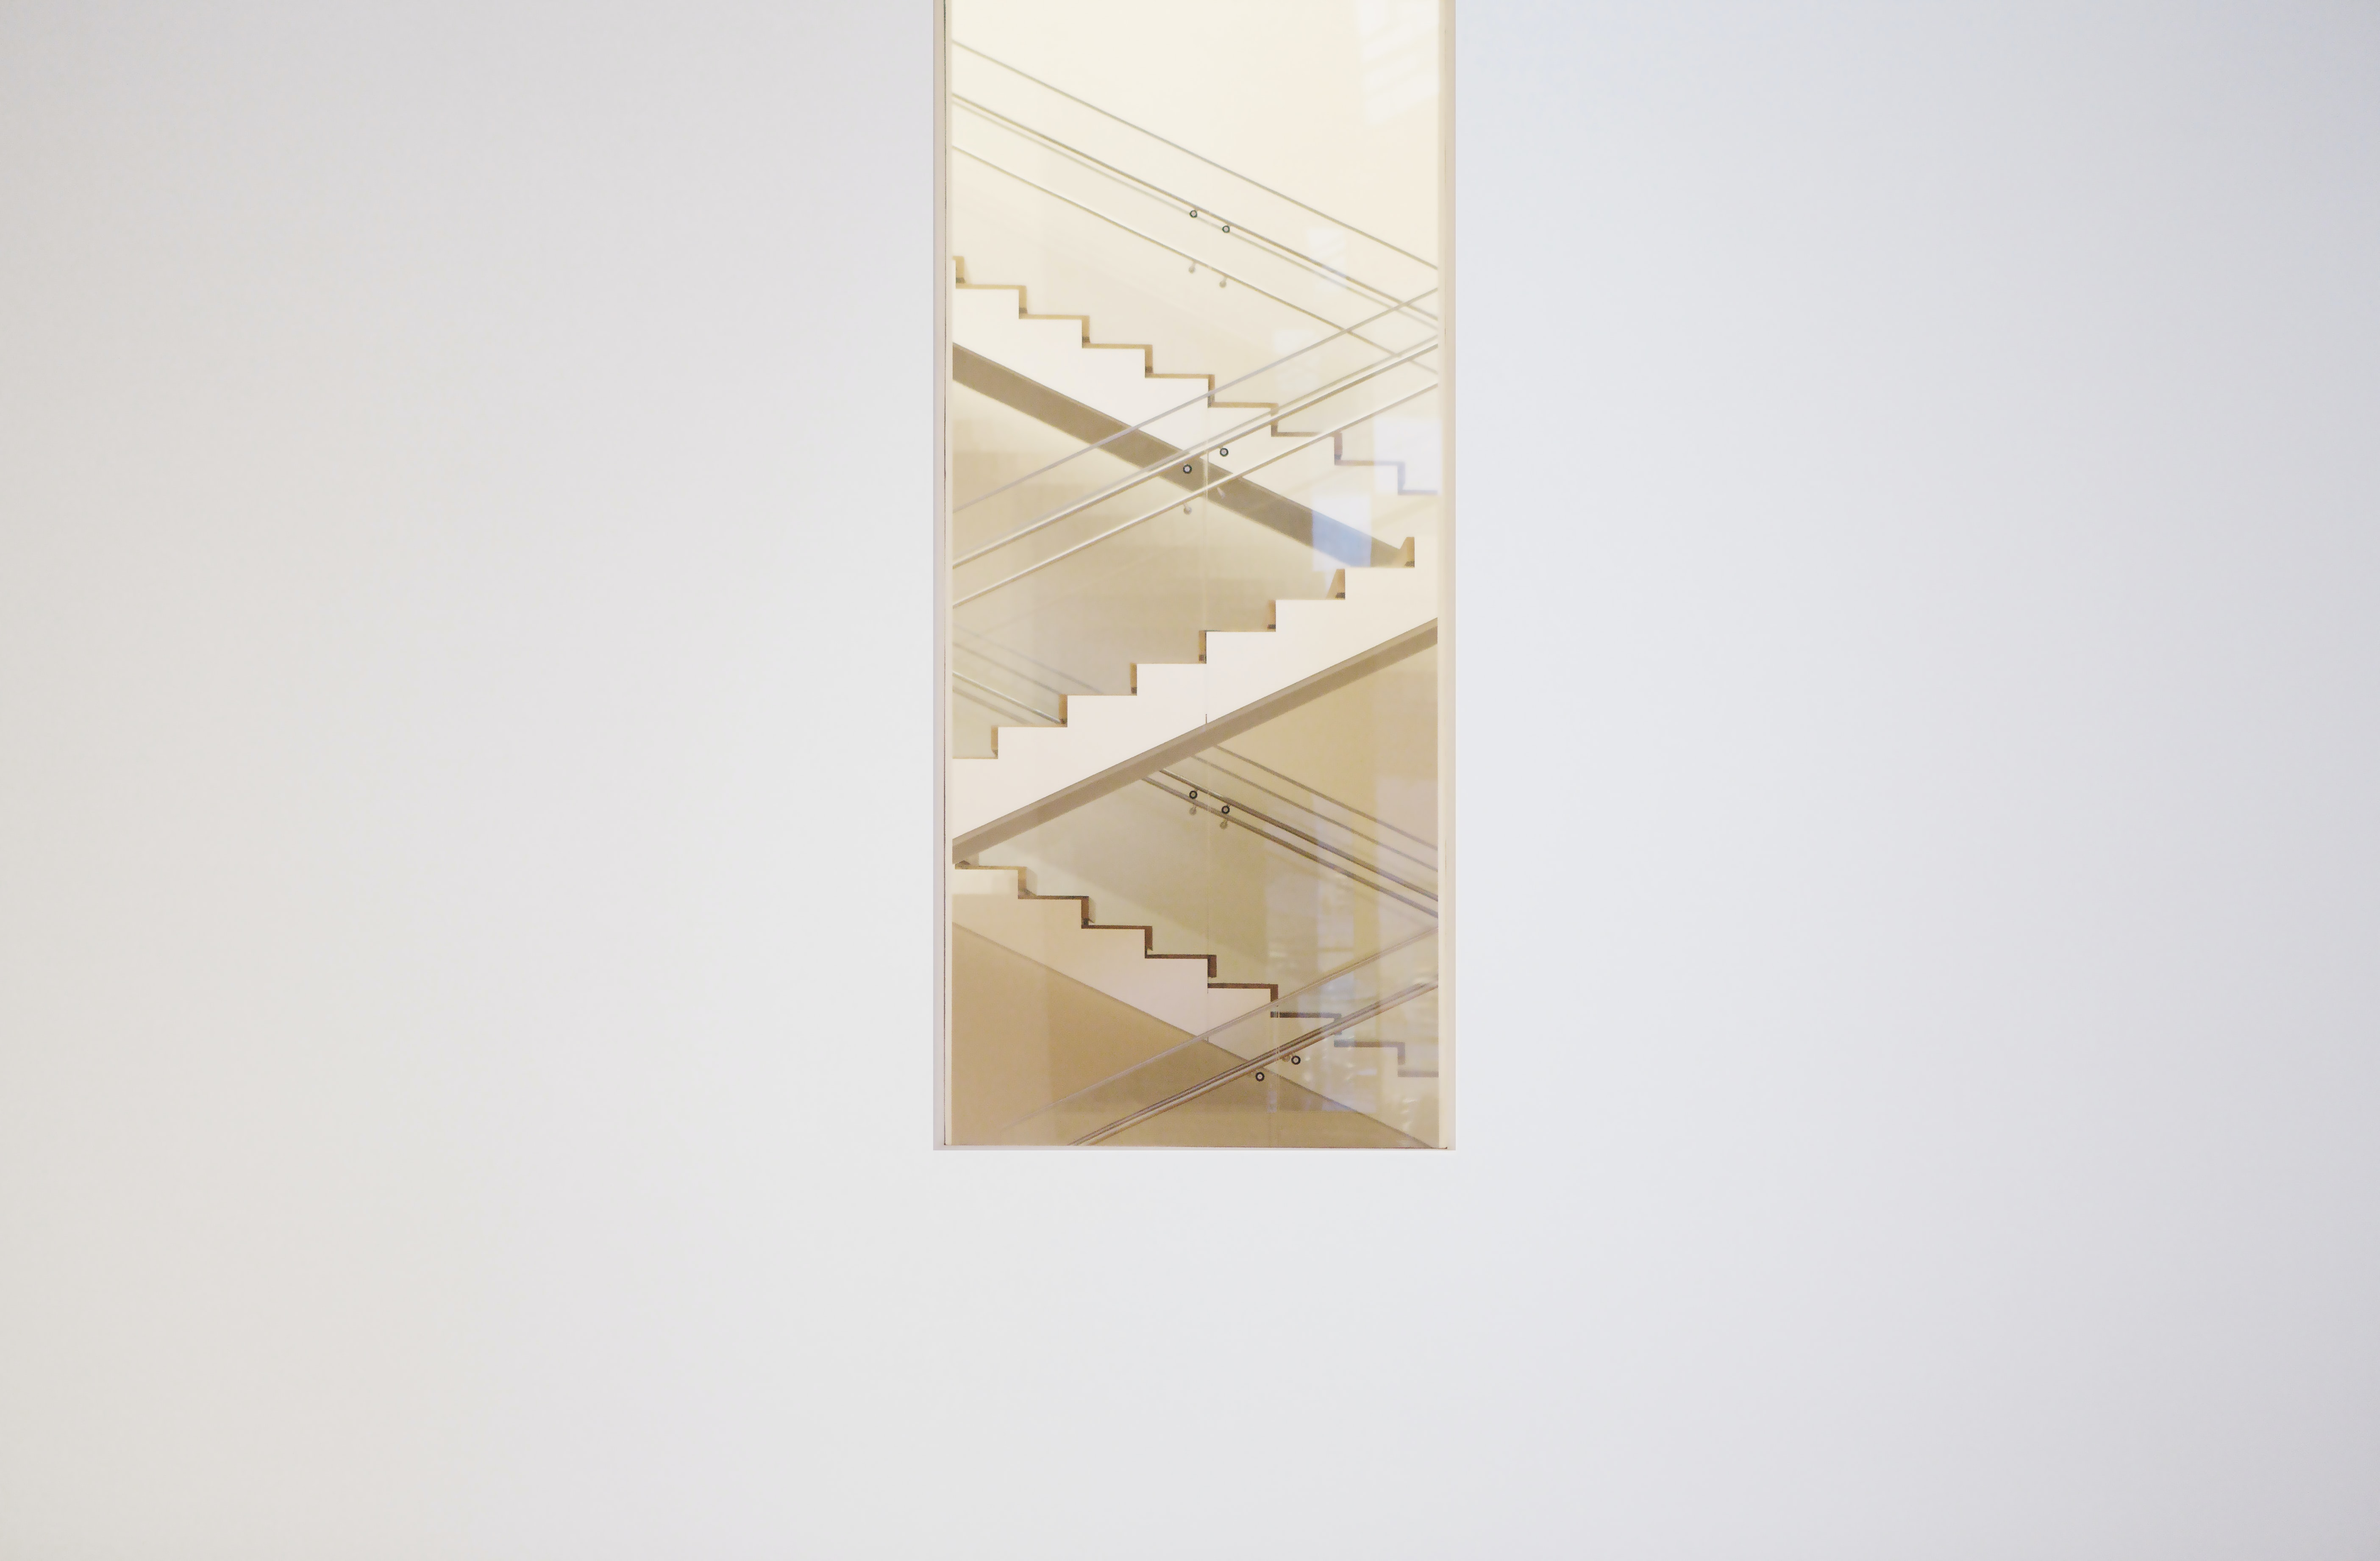 painting of stairs with white wooden frame